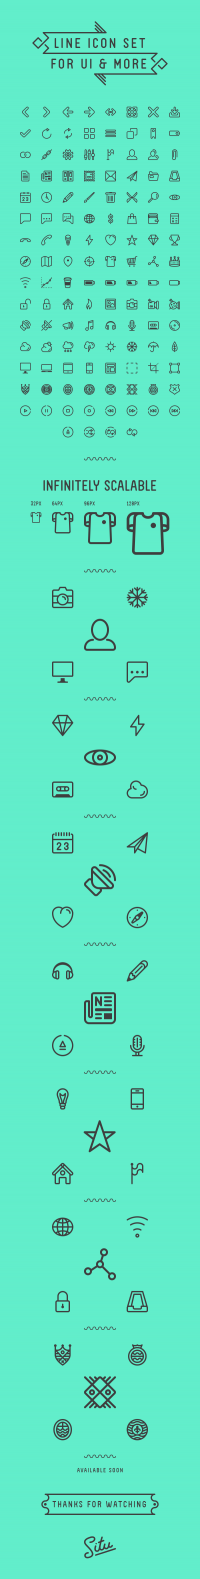 Line icon set for UI & more // Infinitely scalable on